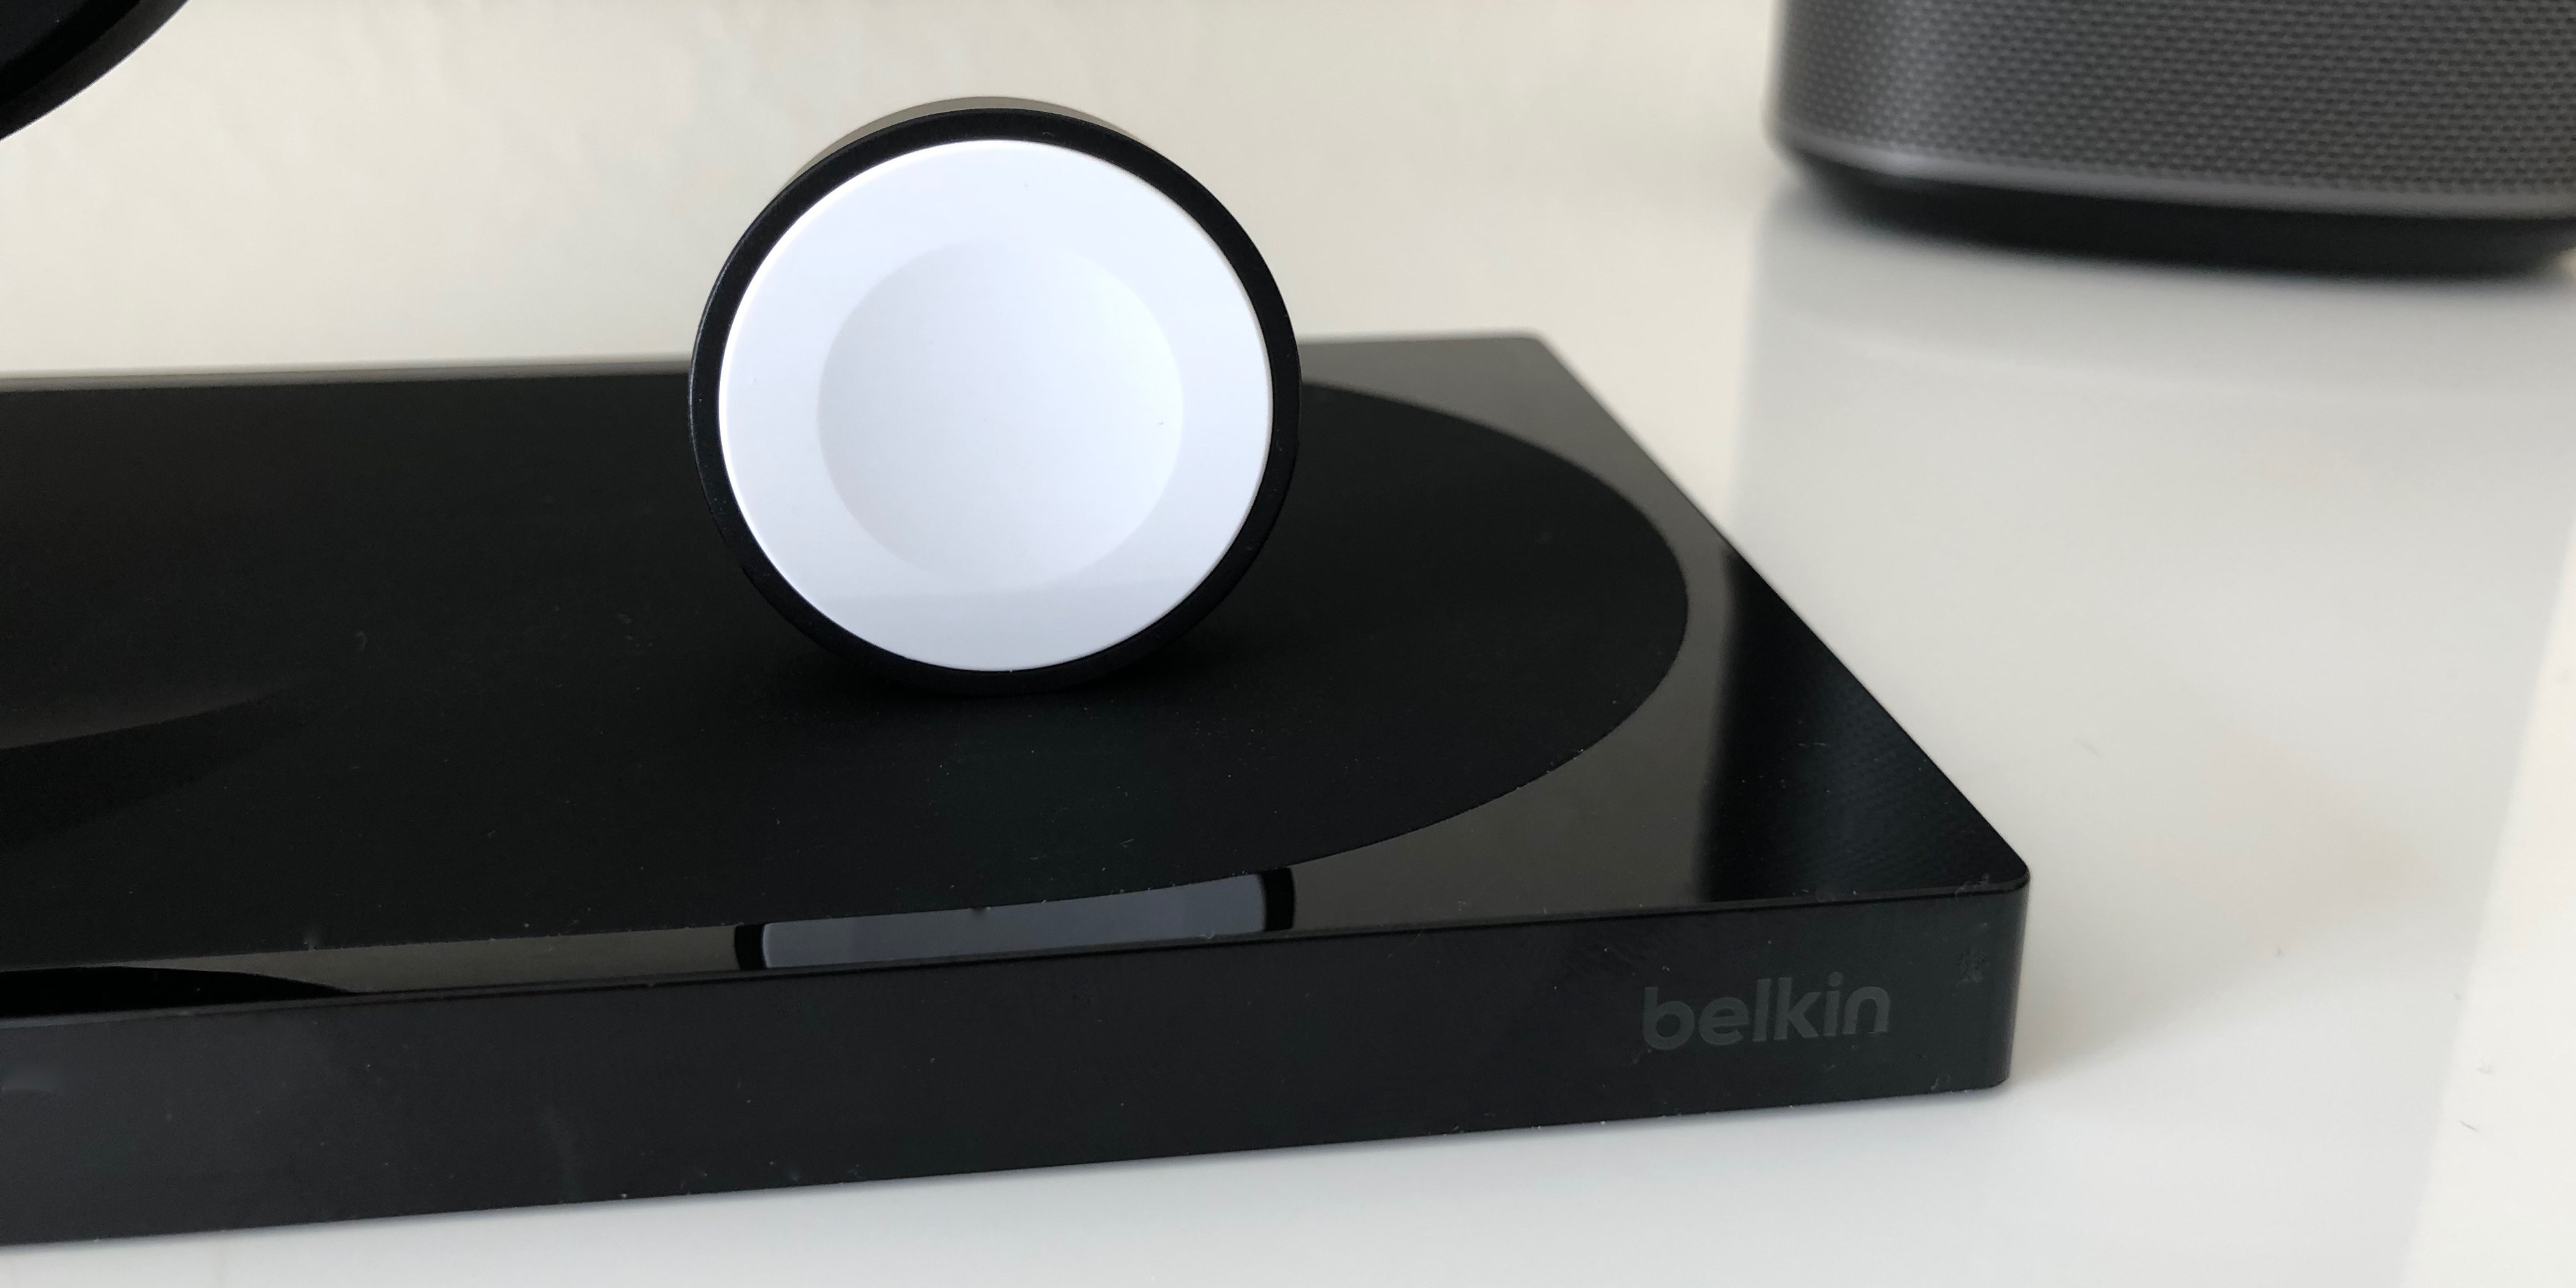 Belkin AirPower wireless charger